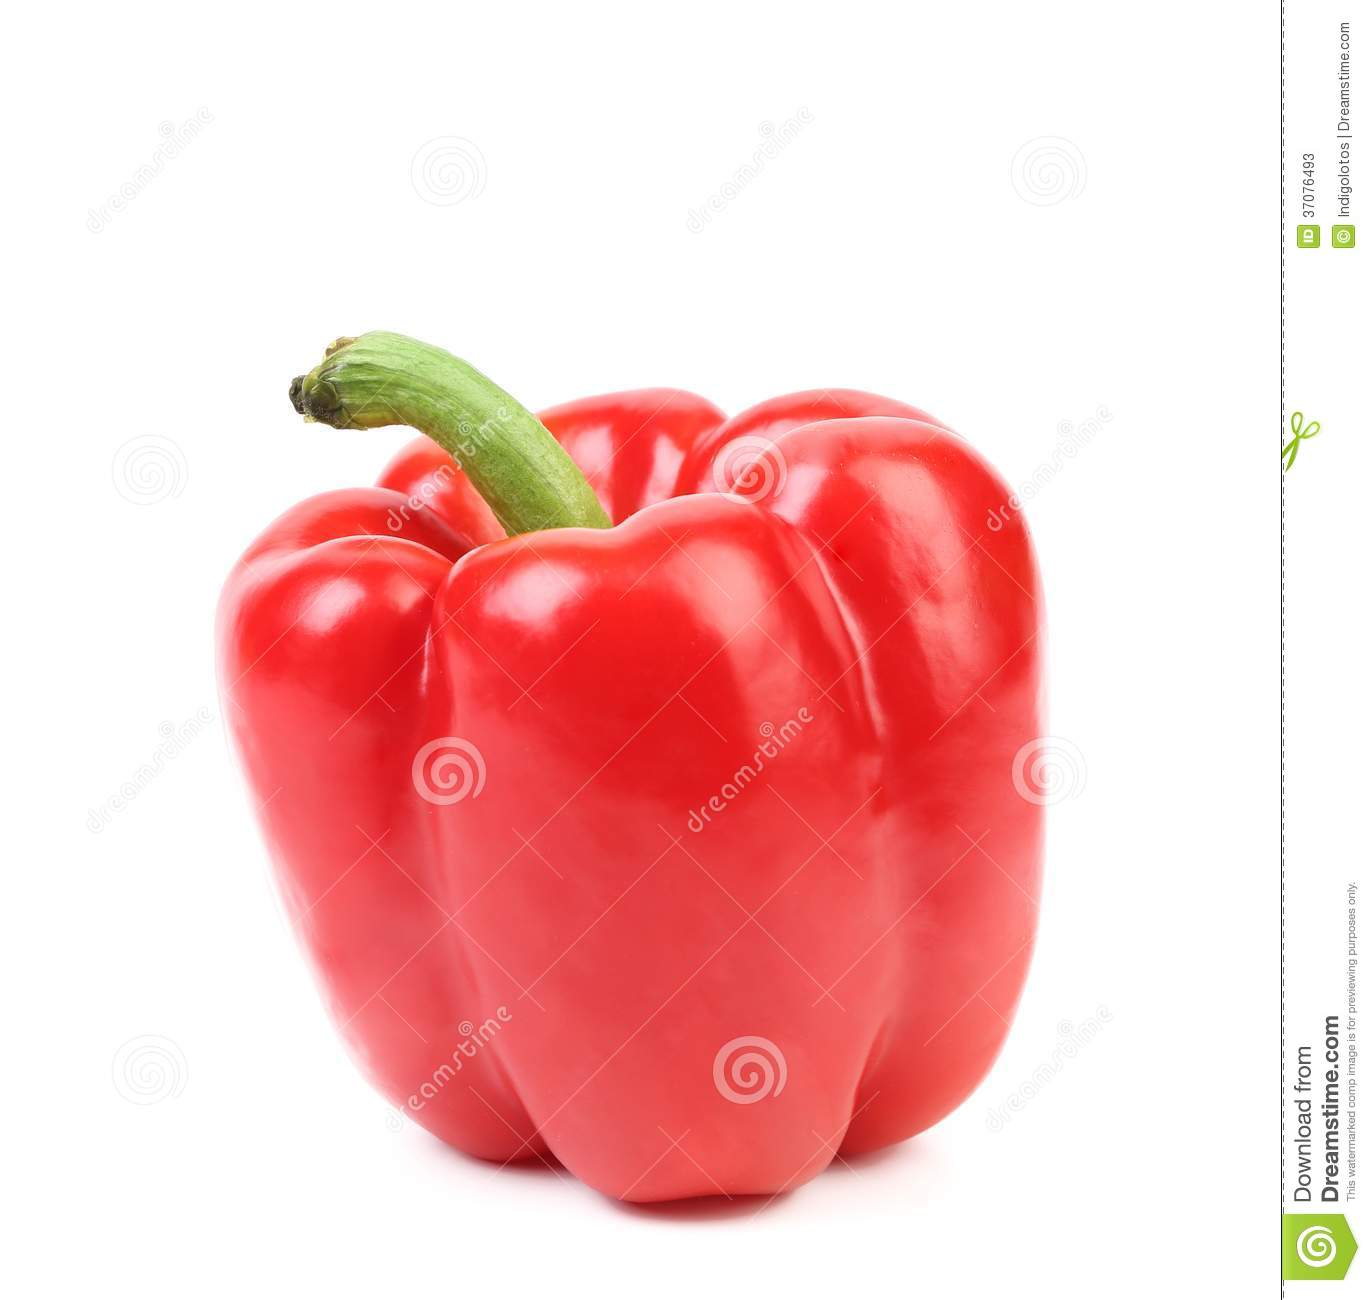 Sweet red pepper. Isolated on a white background.